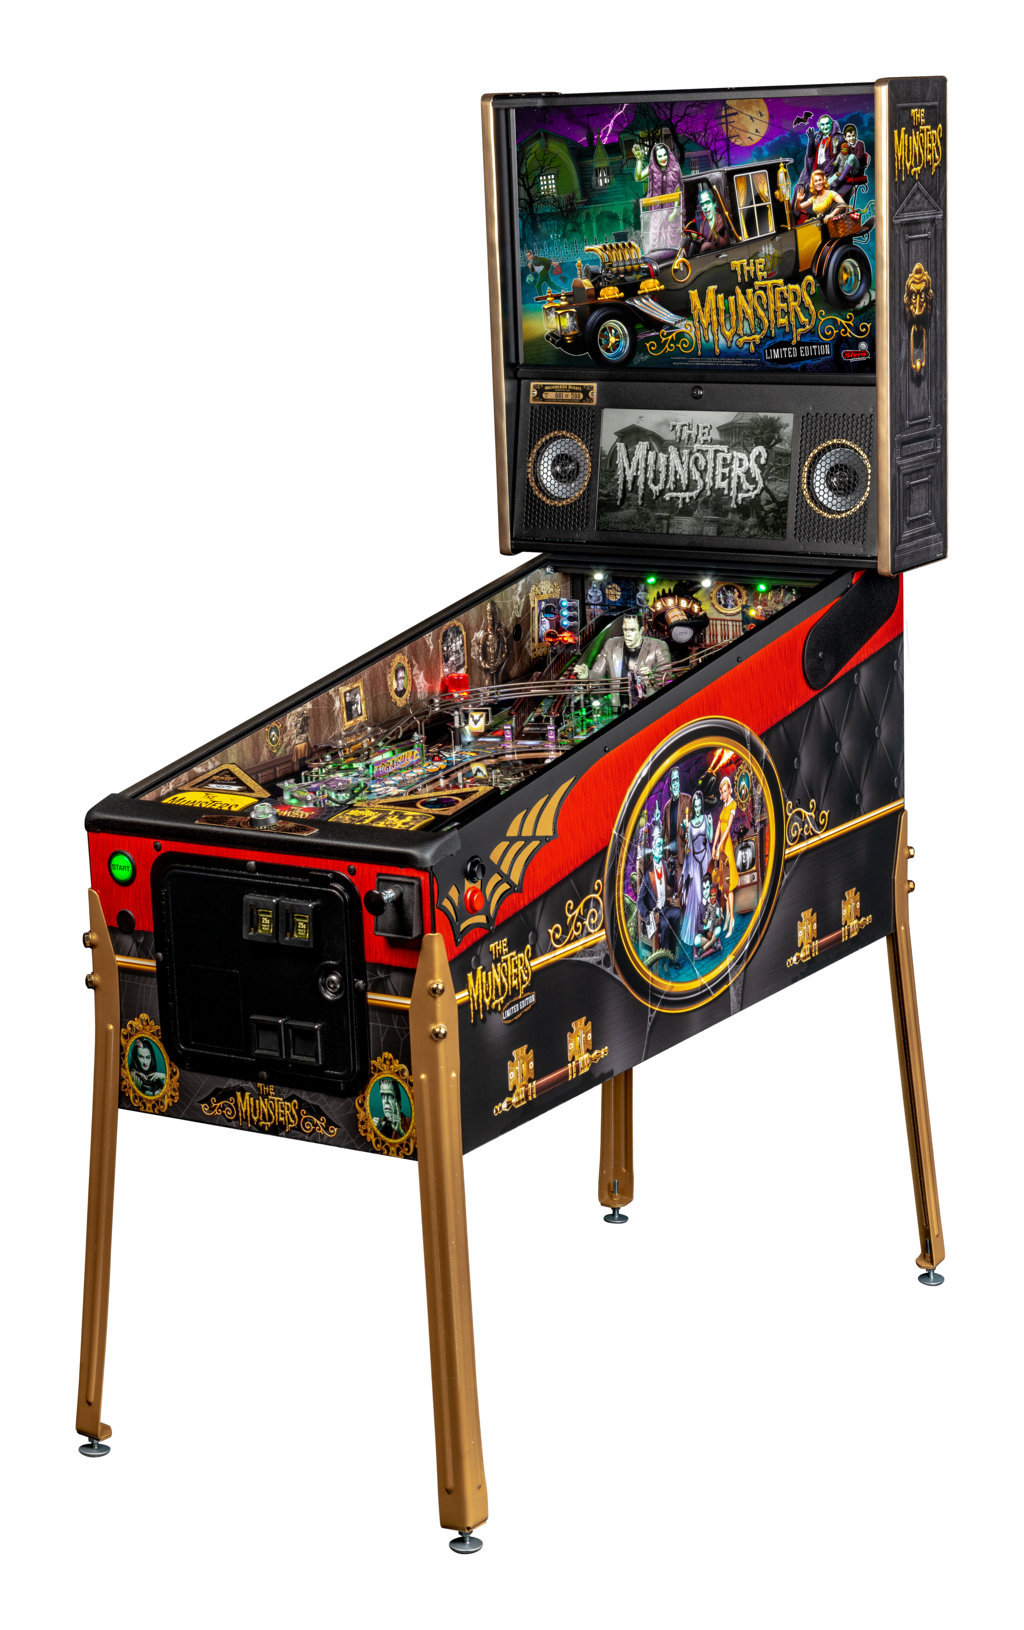 Munsters LE Cabinet LF 010319 mini